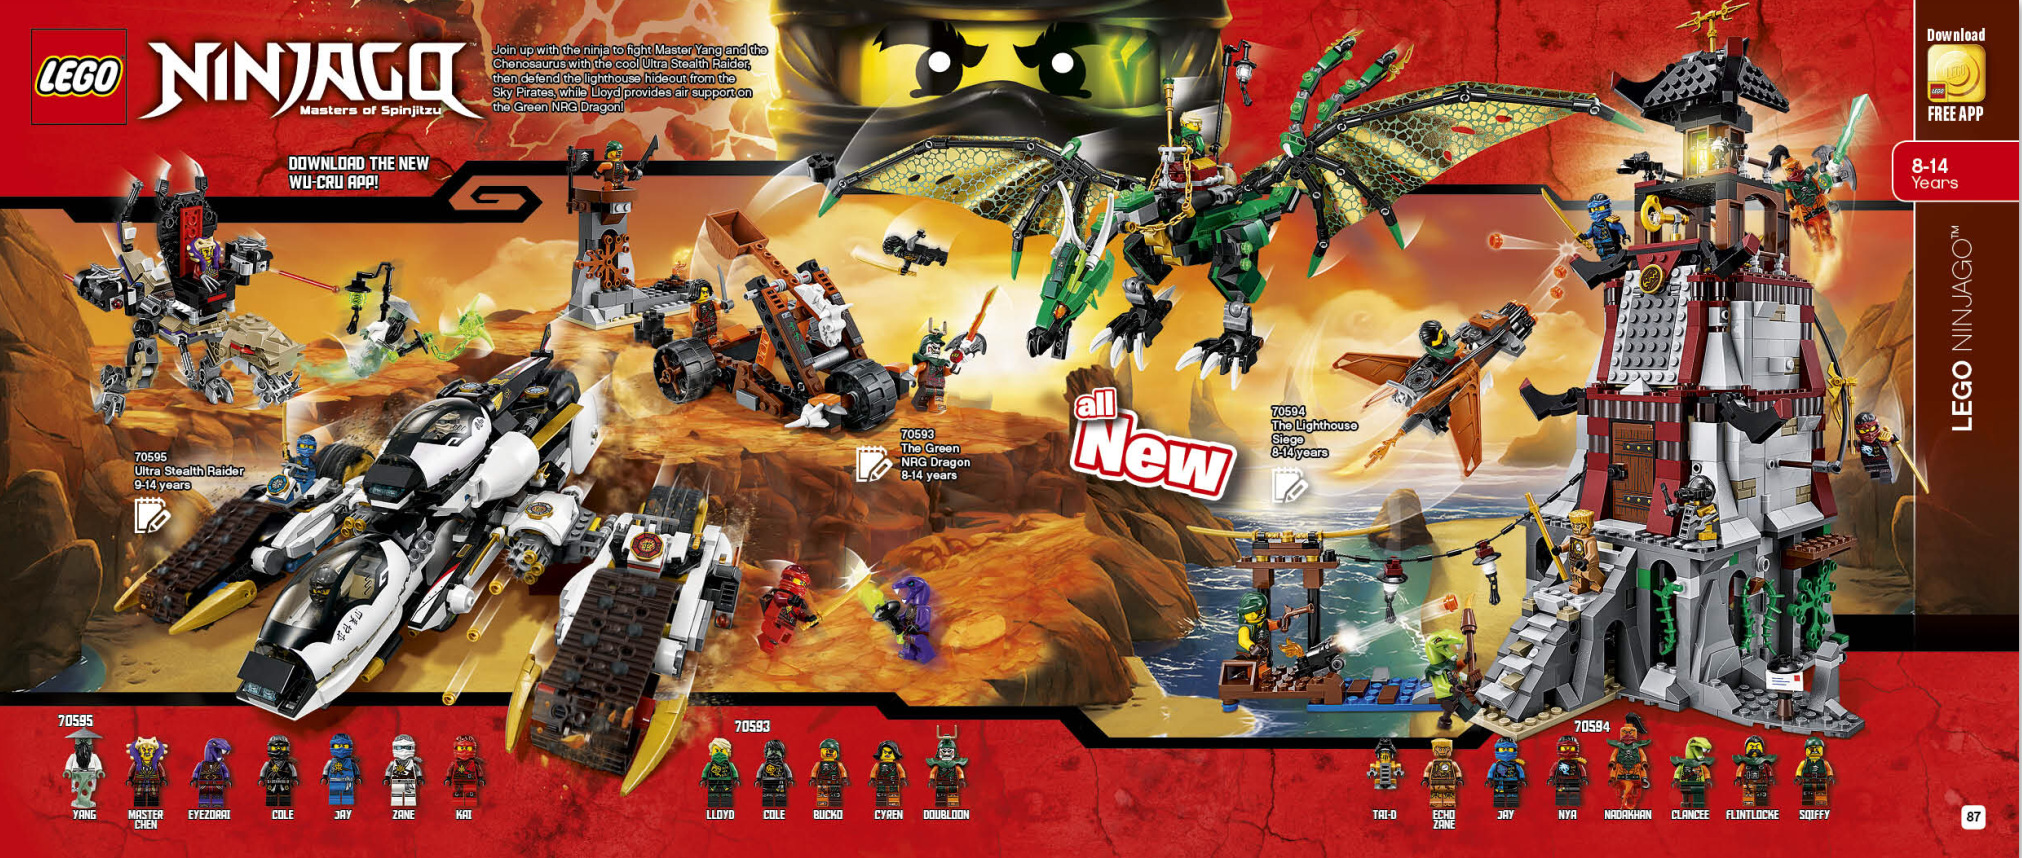 Second Half 2016 Lego Catalogue June December 70596 Ninjago Samurai X Cave Chaos 2hy Calendar